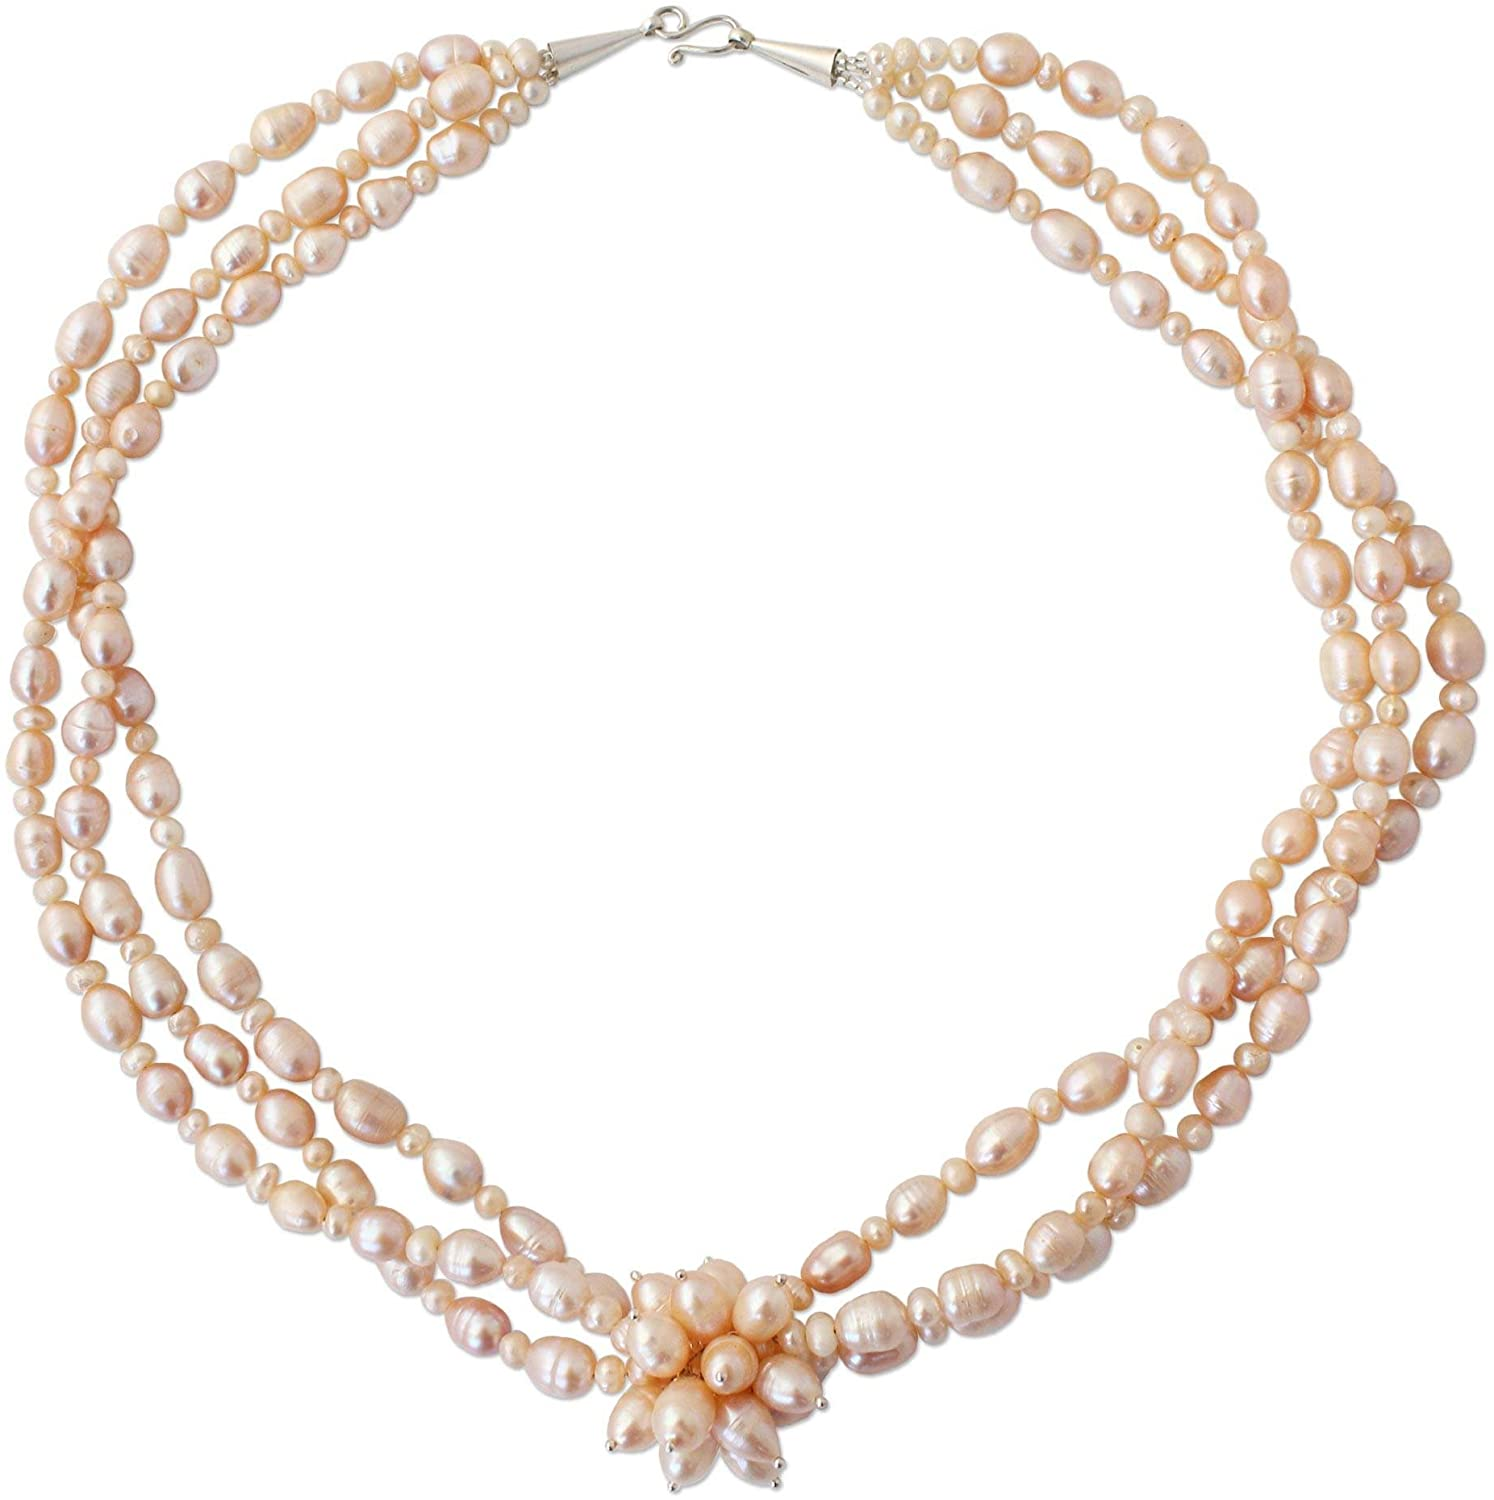 NOVICA Peach Cultured Freshwater Pearl .925 Sterling Silver Necklace, 22.75